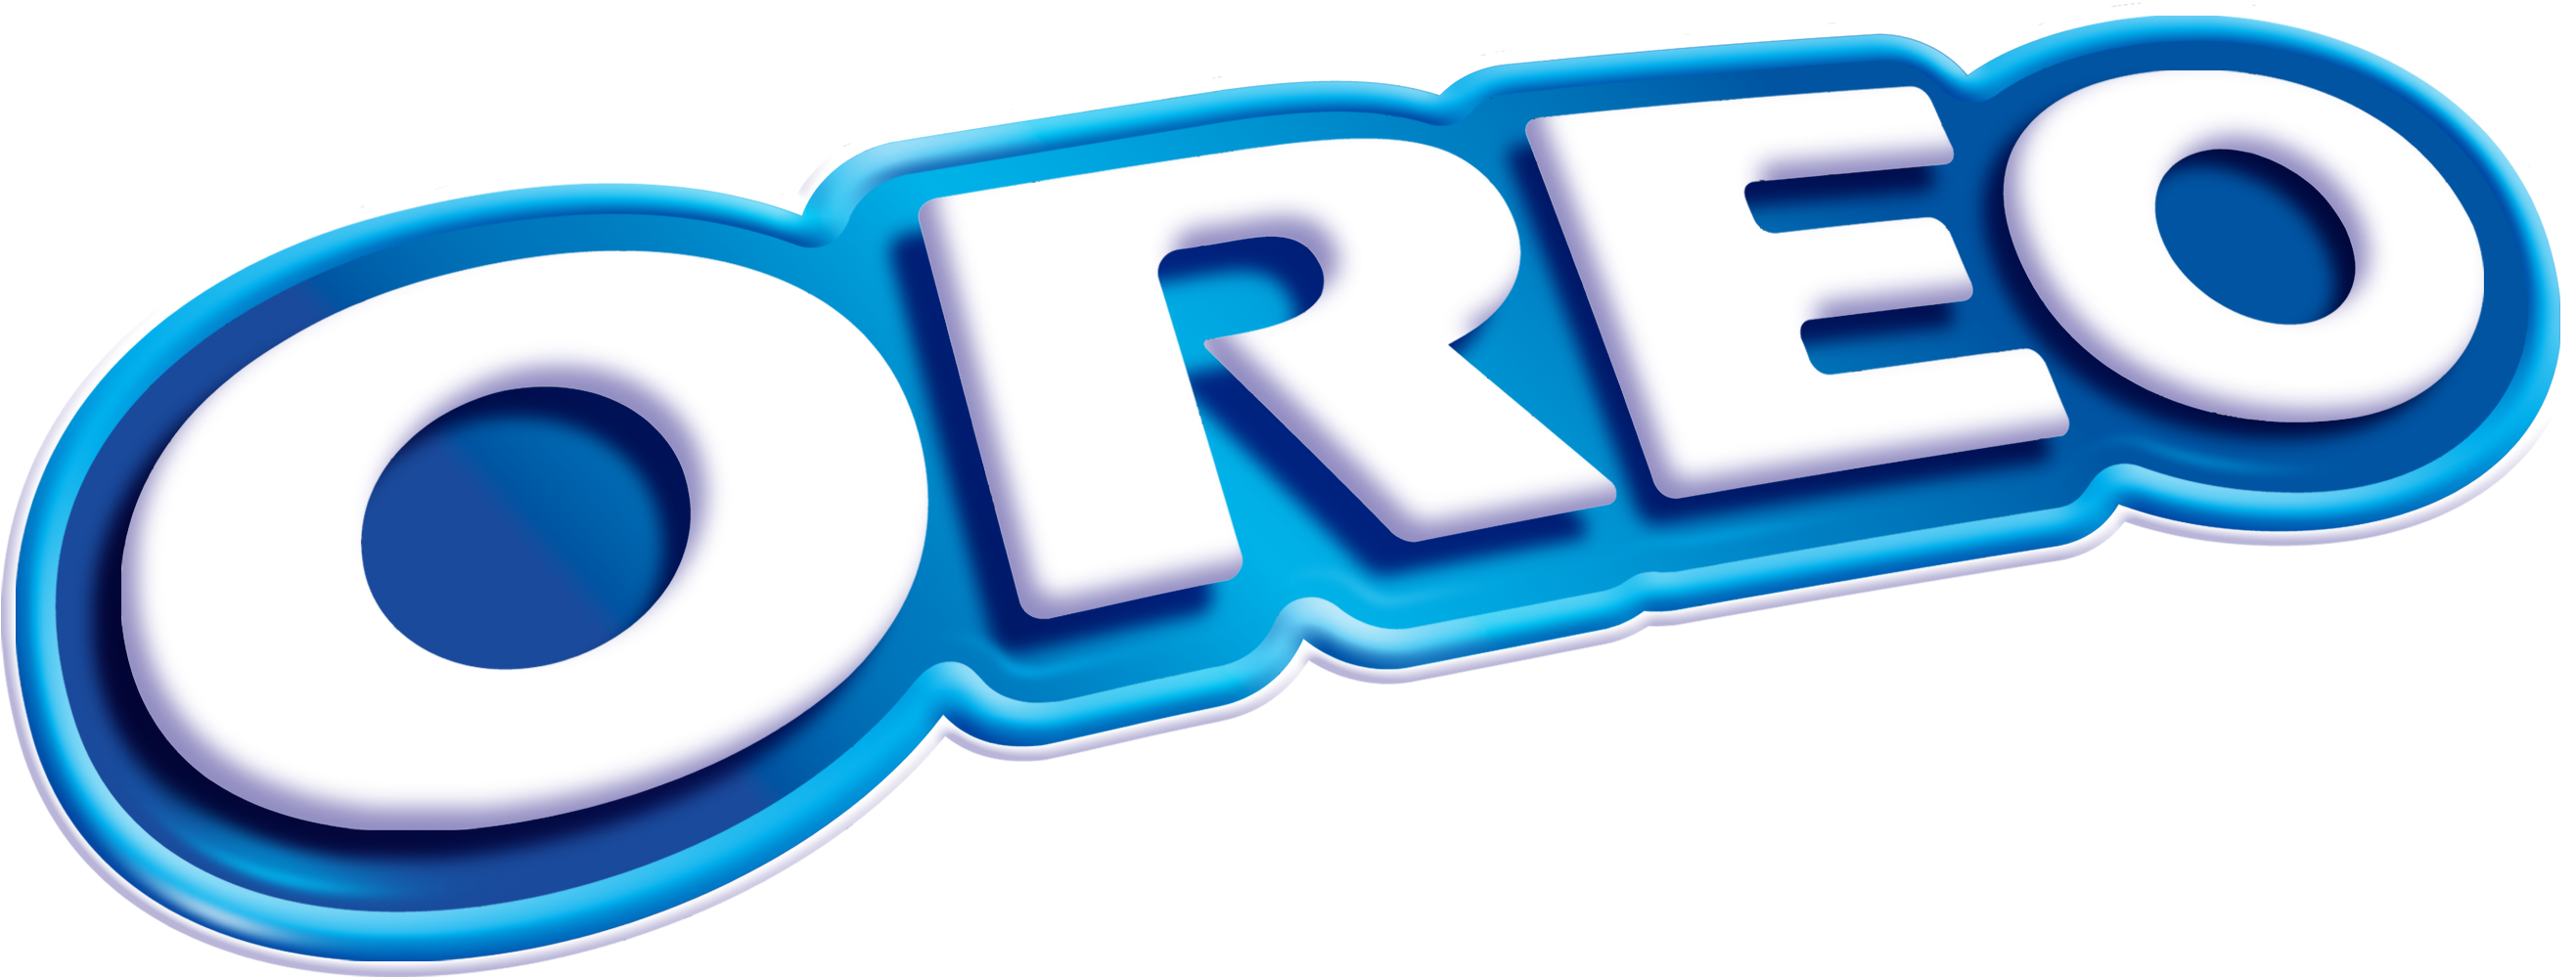 Image result for oreo logo